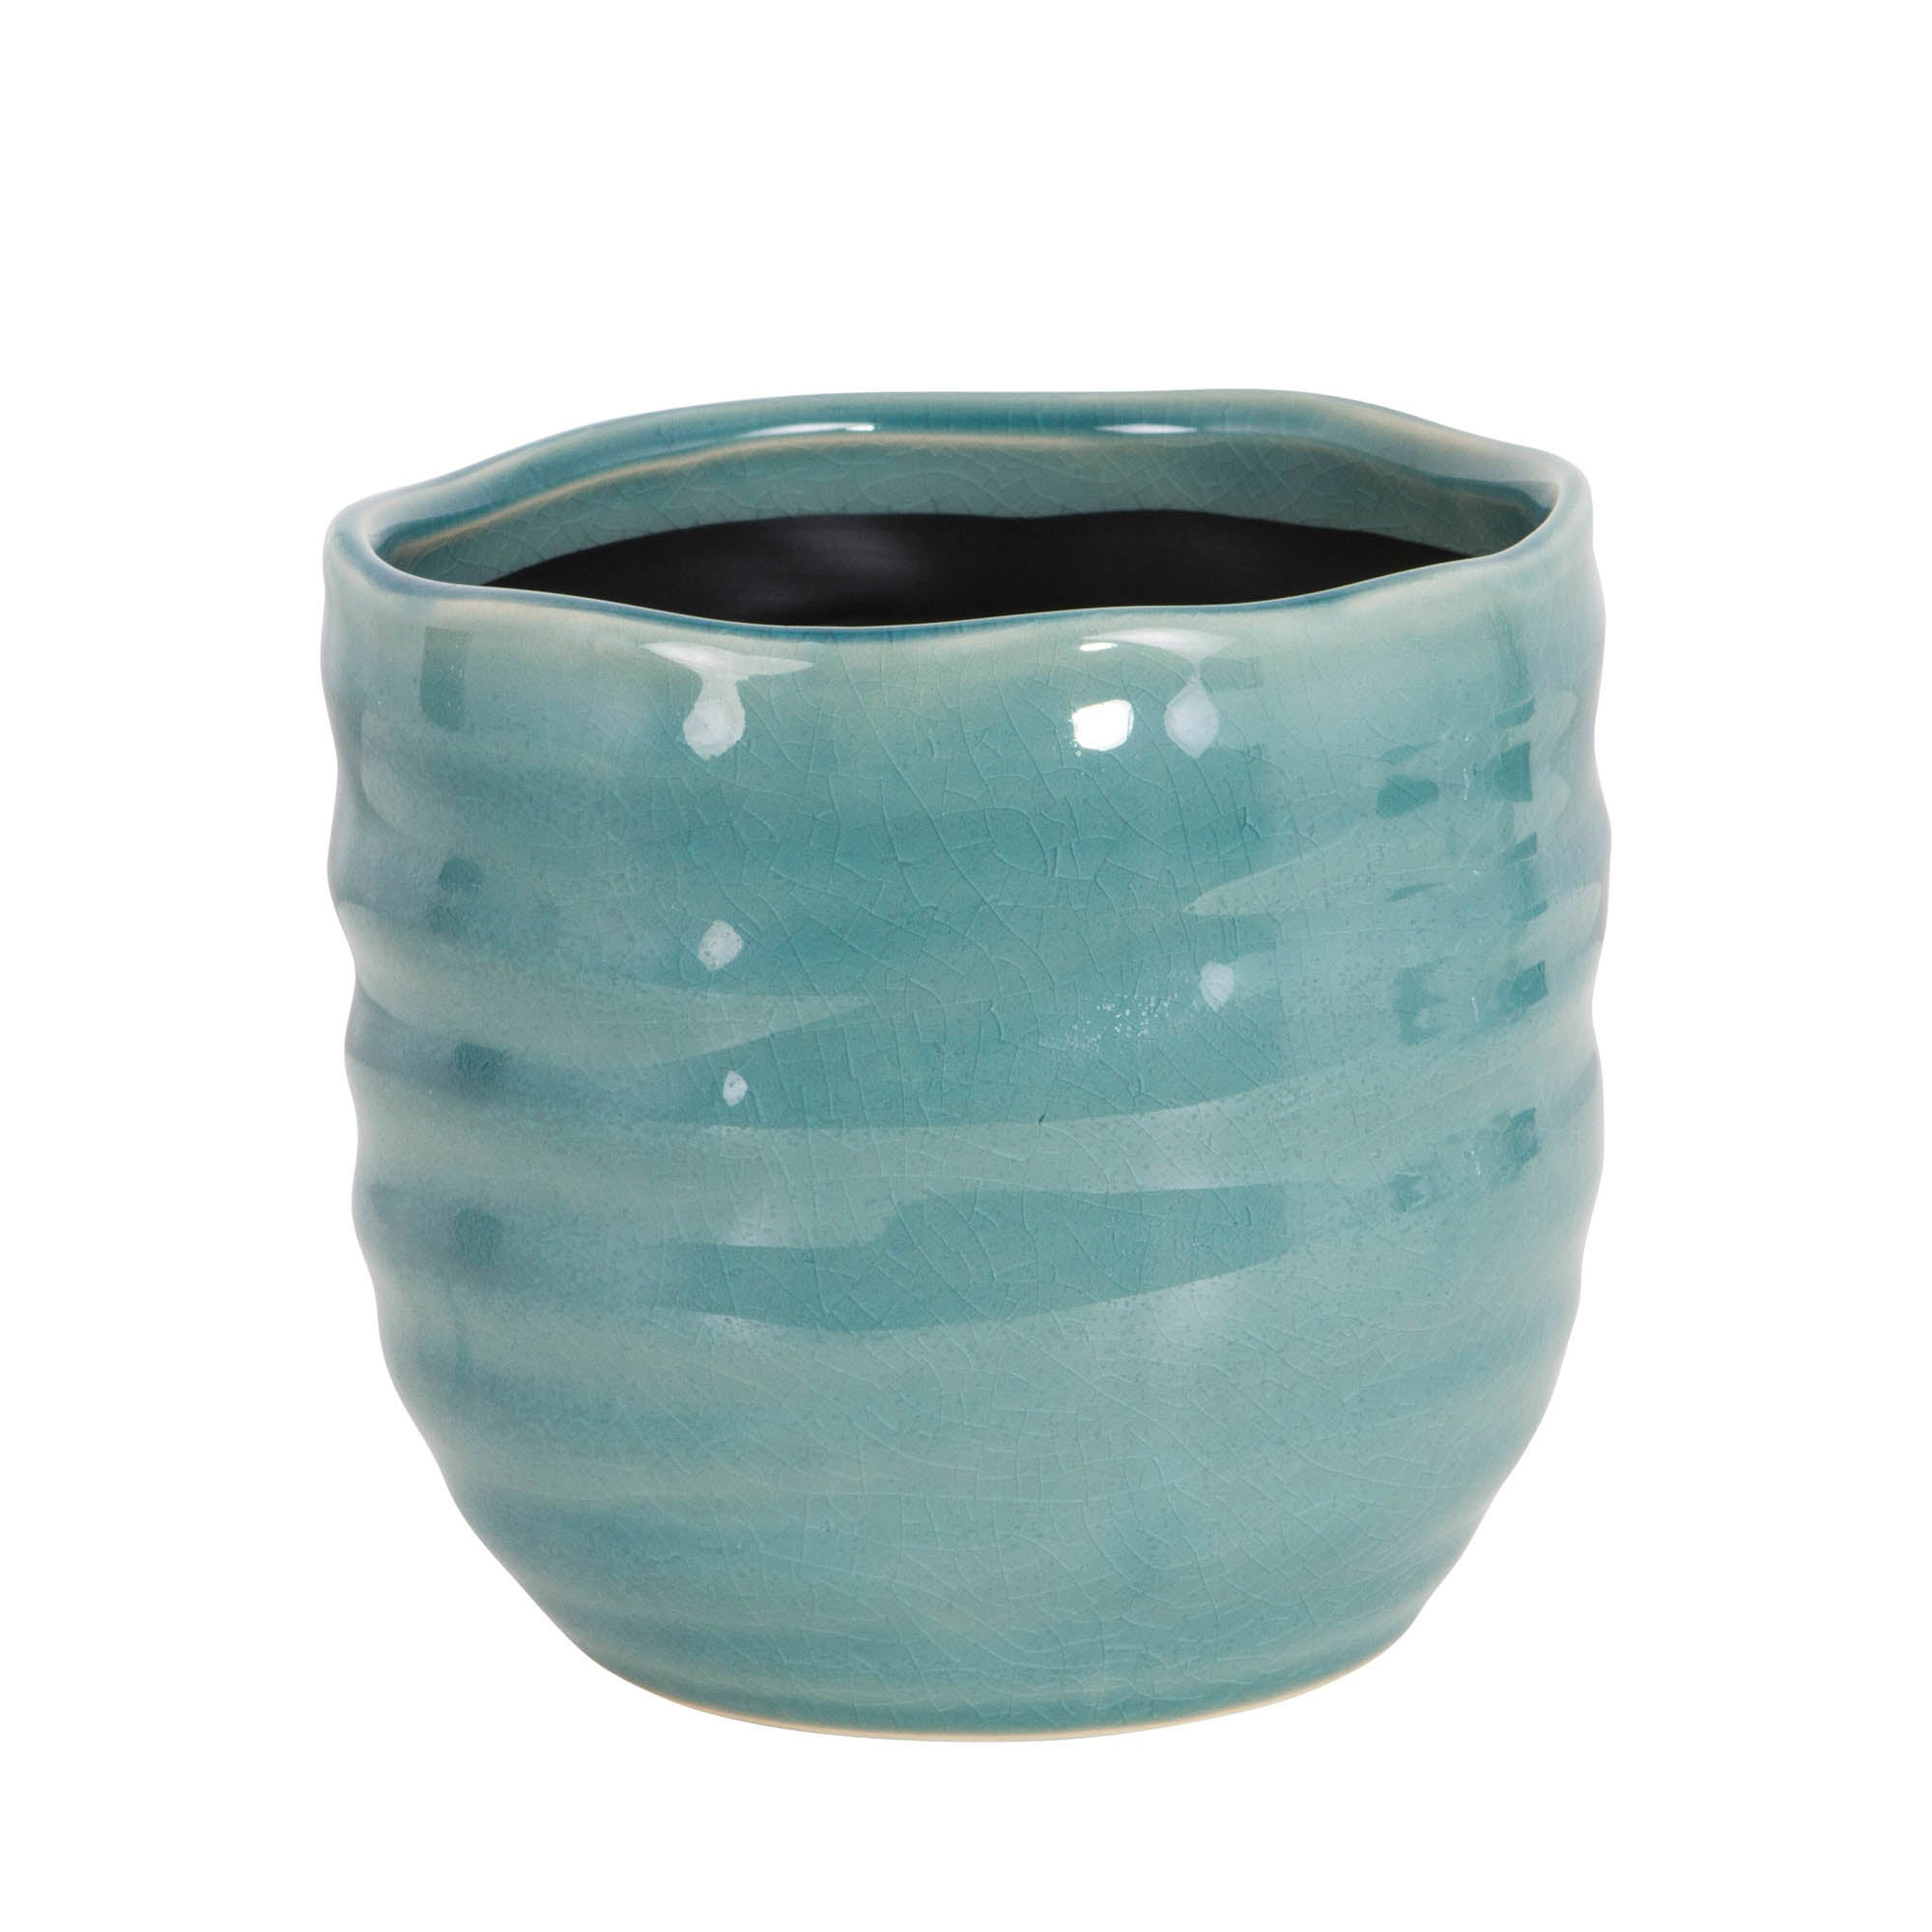 Image of Green Ceramic Plant Pot Green